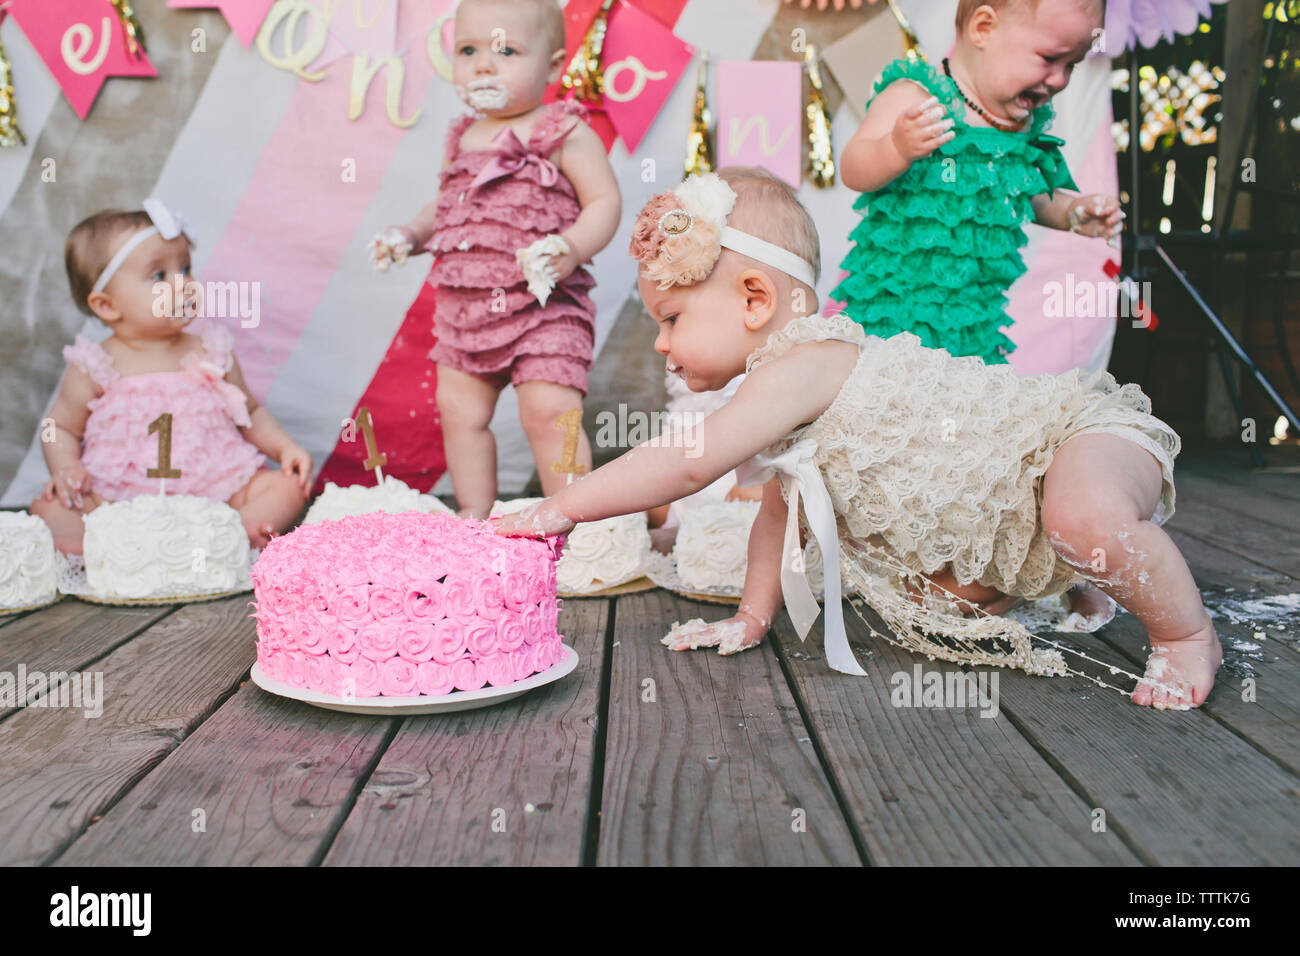 Baby girls with birthday cakes on floorboard at party - Stock Image